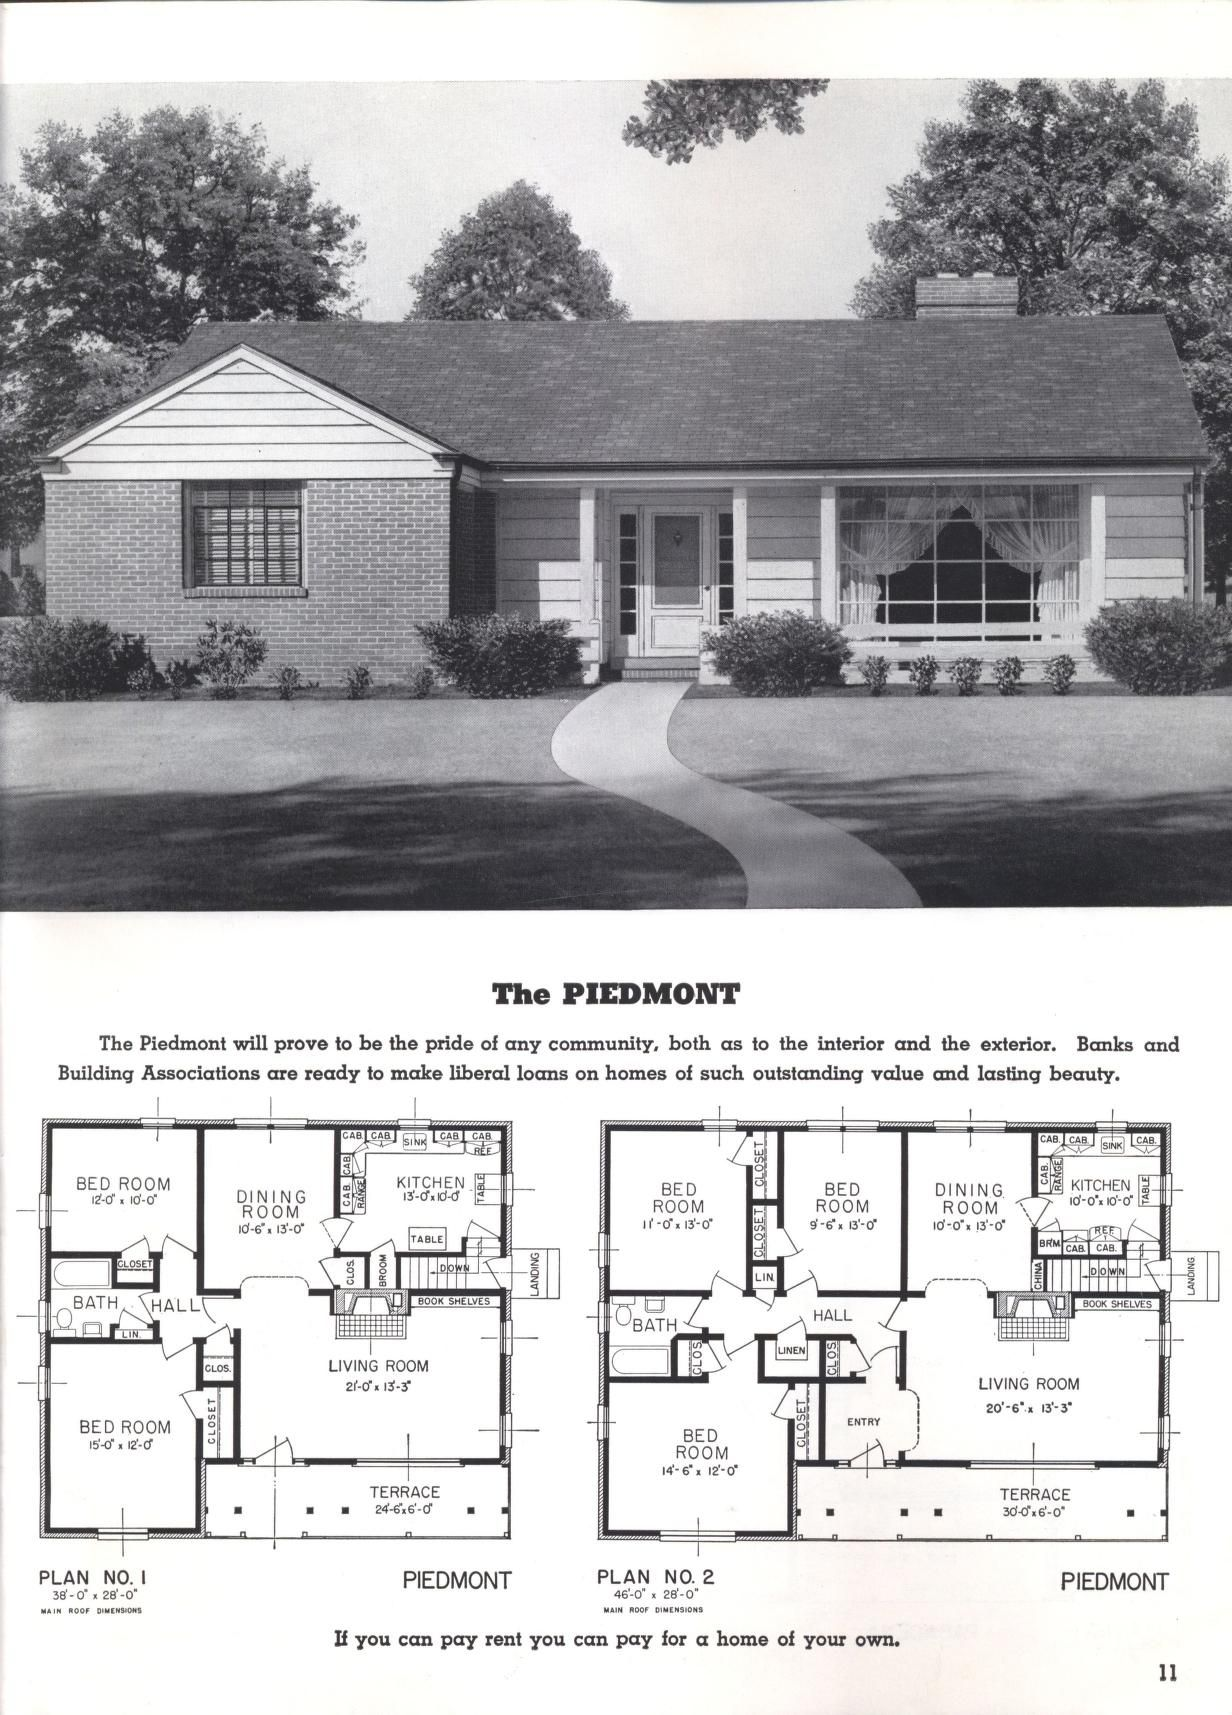 Better Homes At Lower Cost A 50 By Standard Homes Co Publication Date 1950 Sims House Plans Old Houses Better Homes